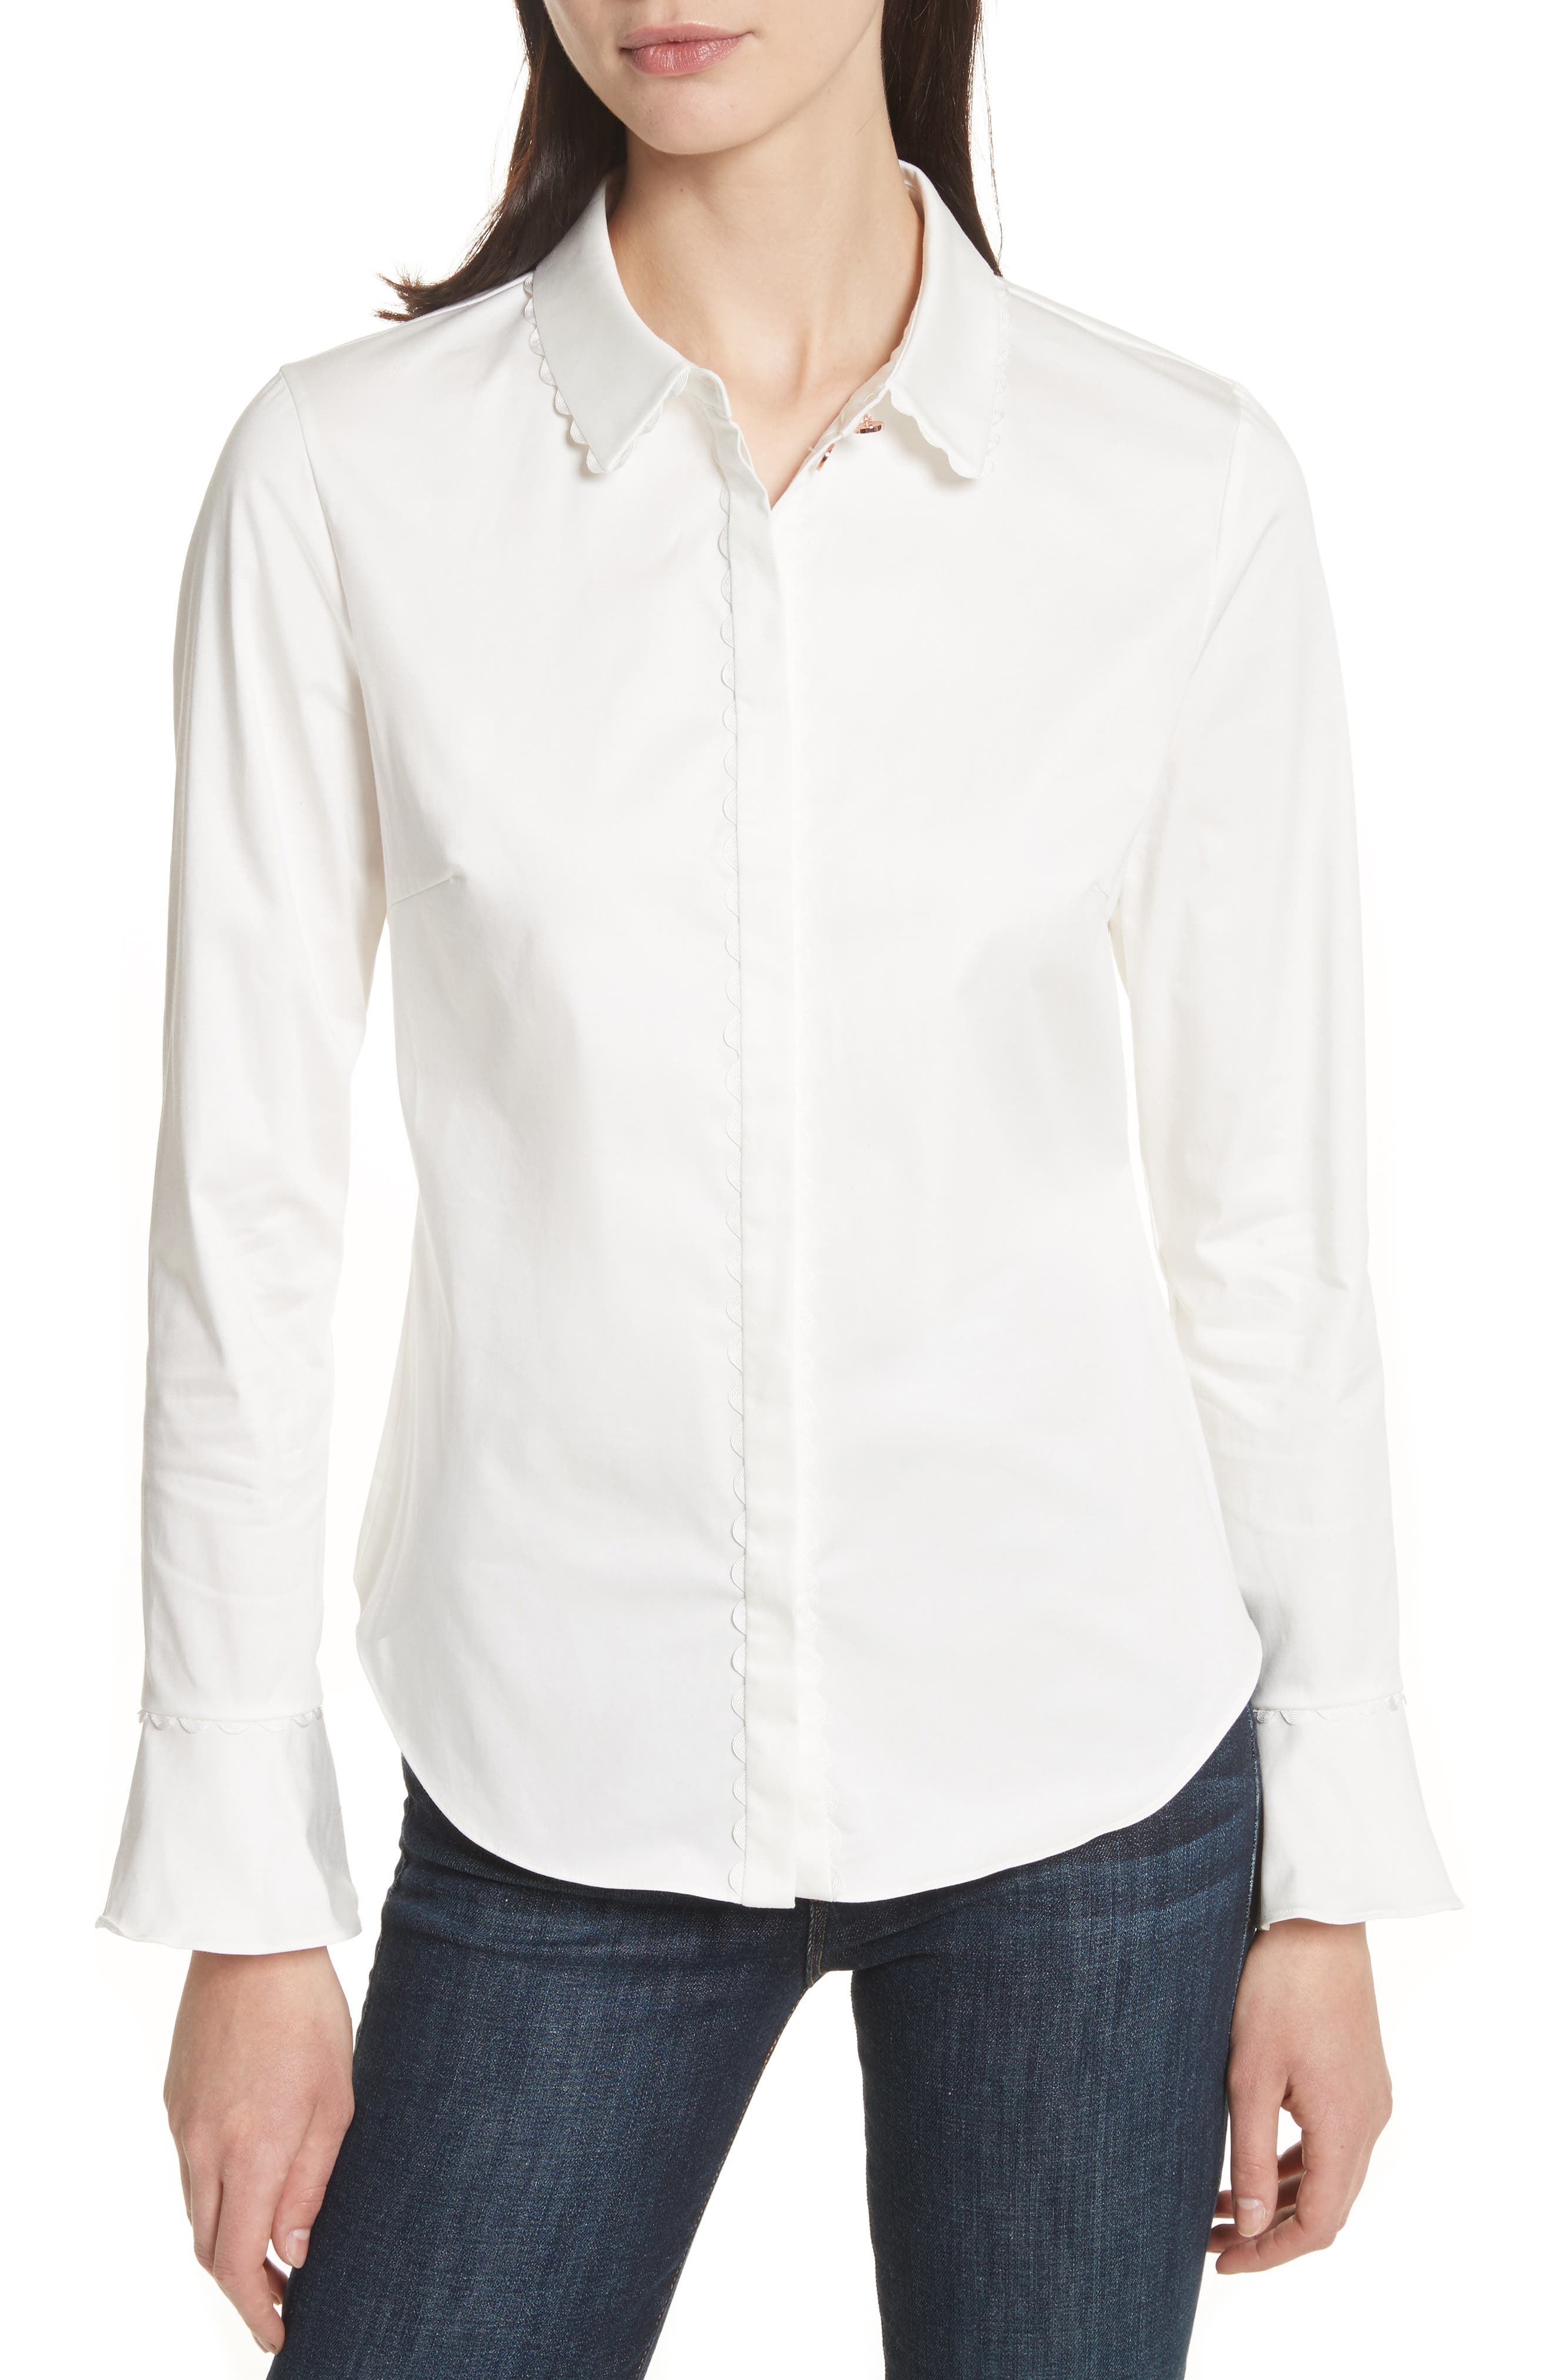 Alternate Image 1 Selected - Ted Baker London Fluted Scallop Trim Shirt